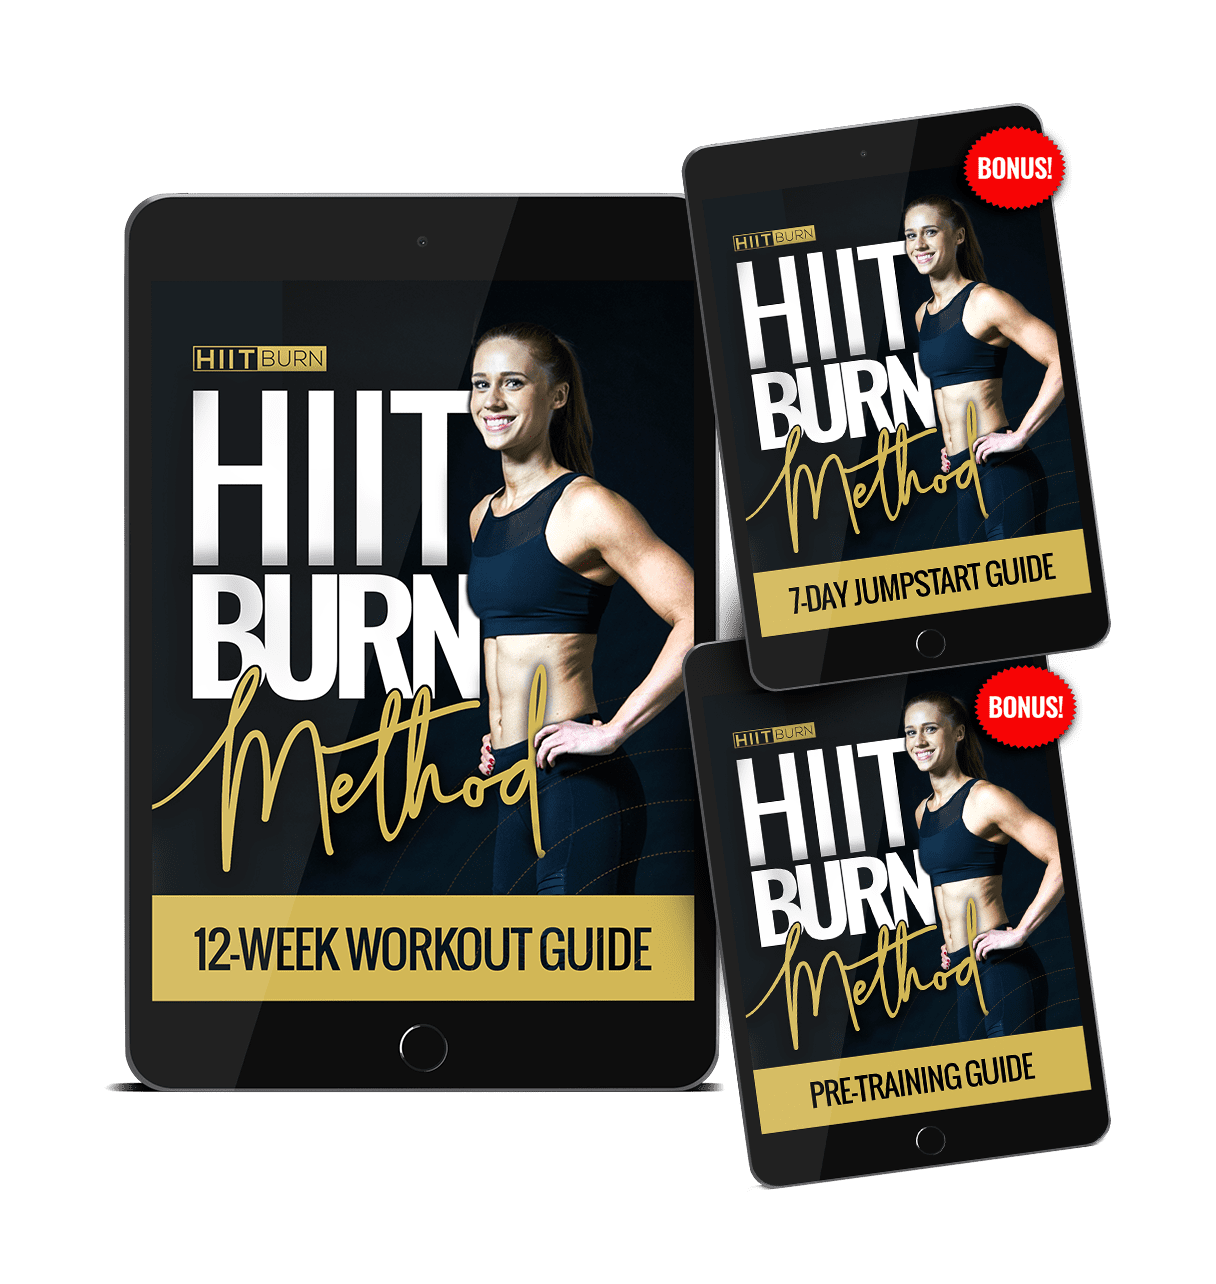 HIITBURN Method | 12-Week Workout Guide (BEST SELLER)